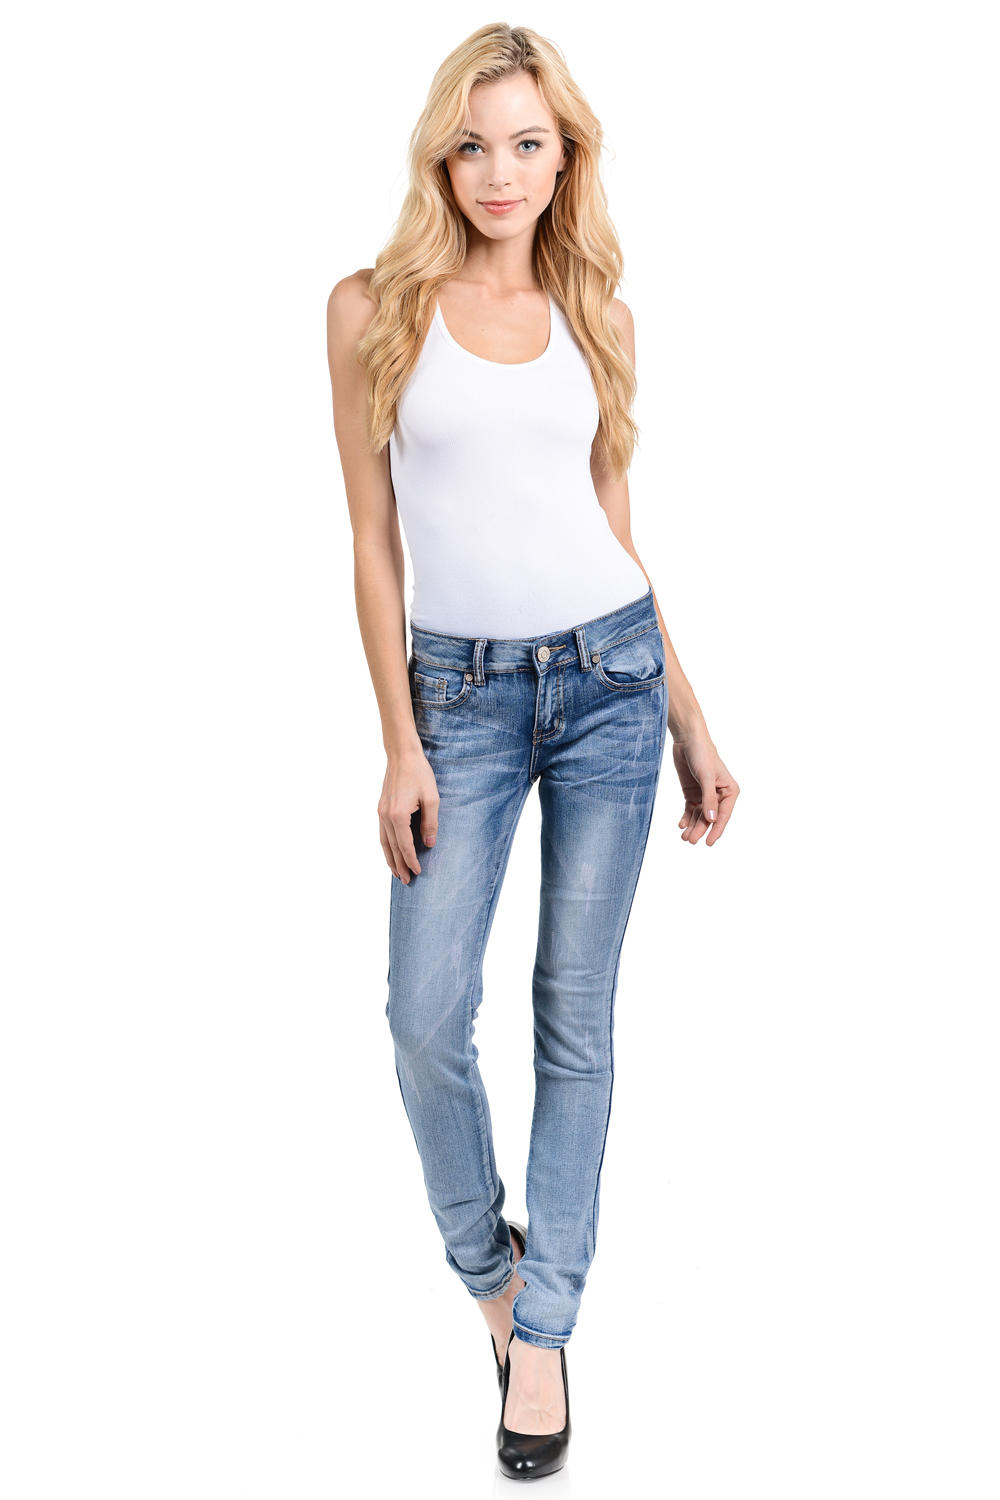 Sweet Look Premium Edition Women's Jeans - Push Up - Style WG0206